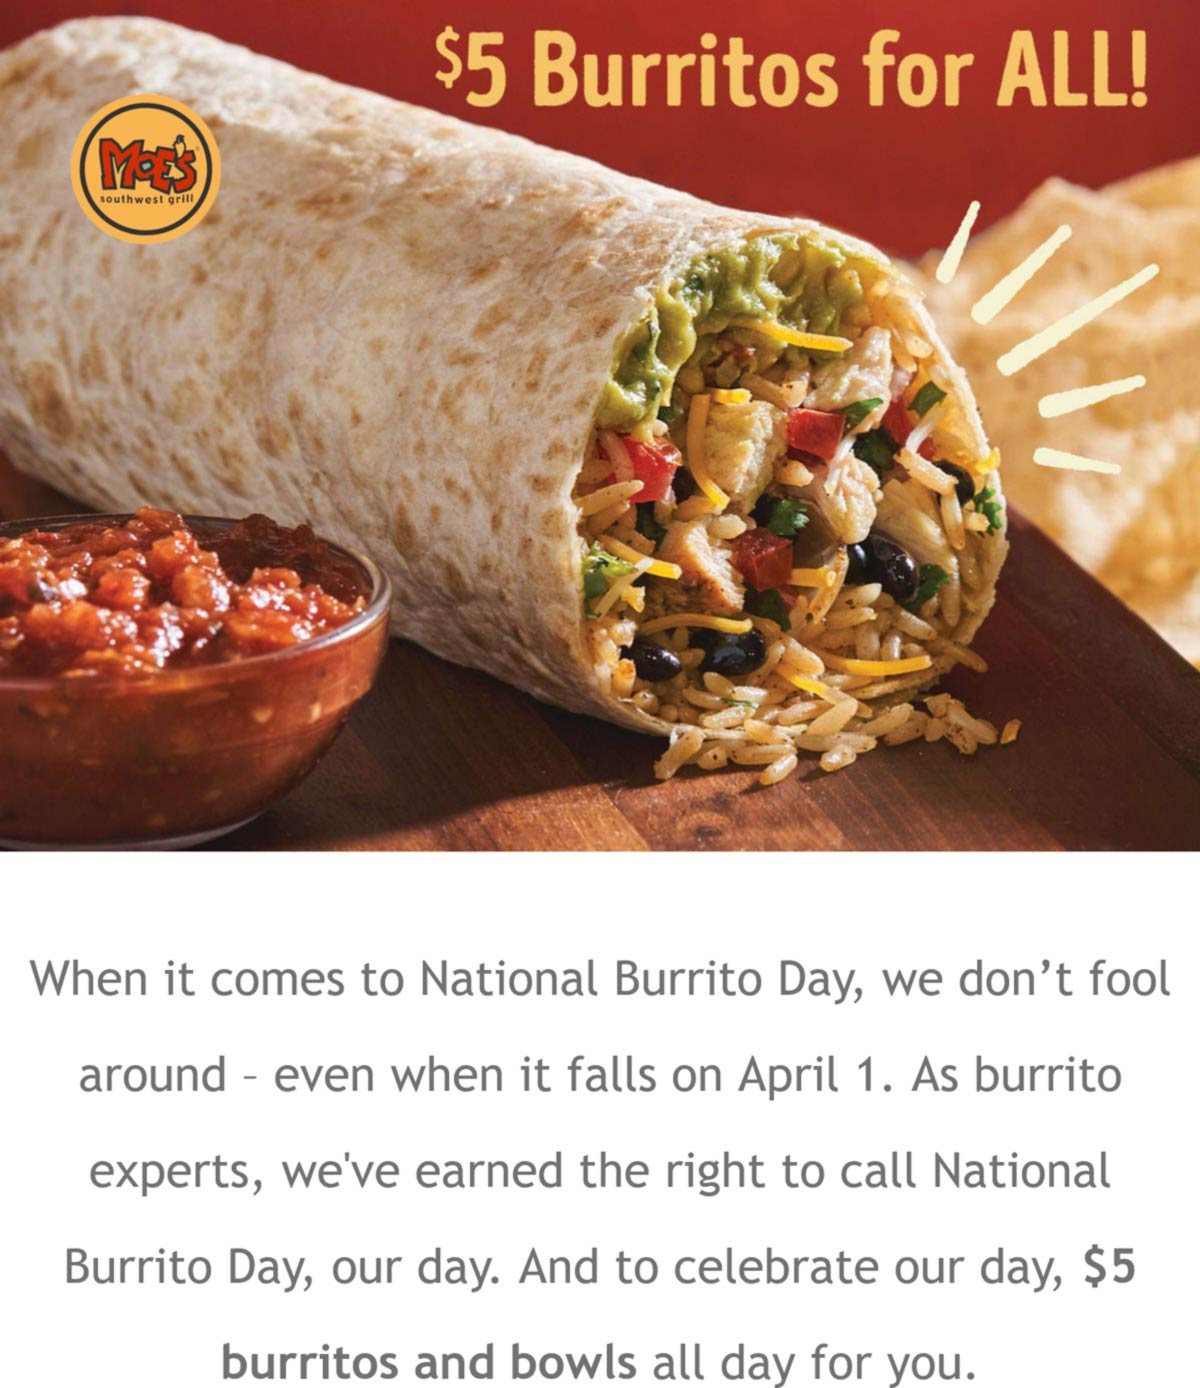 Moes Southwest Grill restaurants Coupon  $5 burritos today at Moes Southwest Grill #moessouthwestgrill